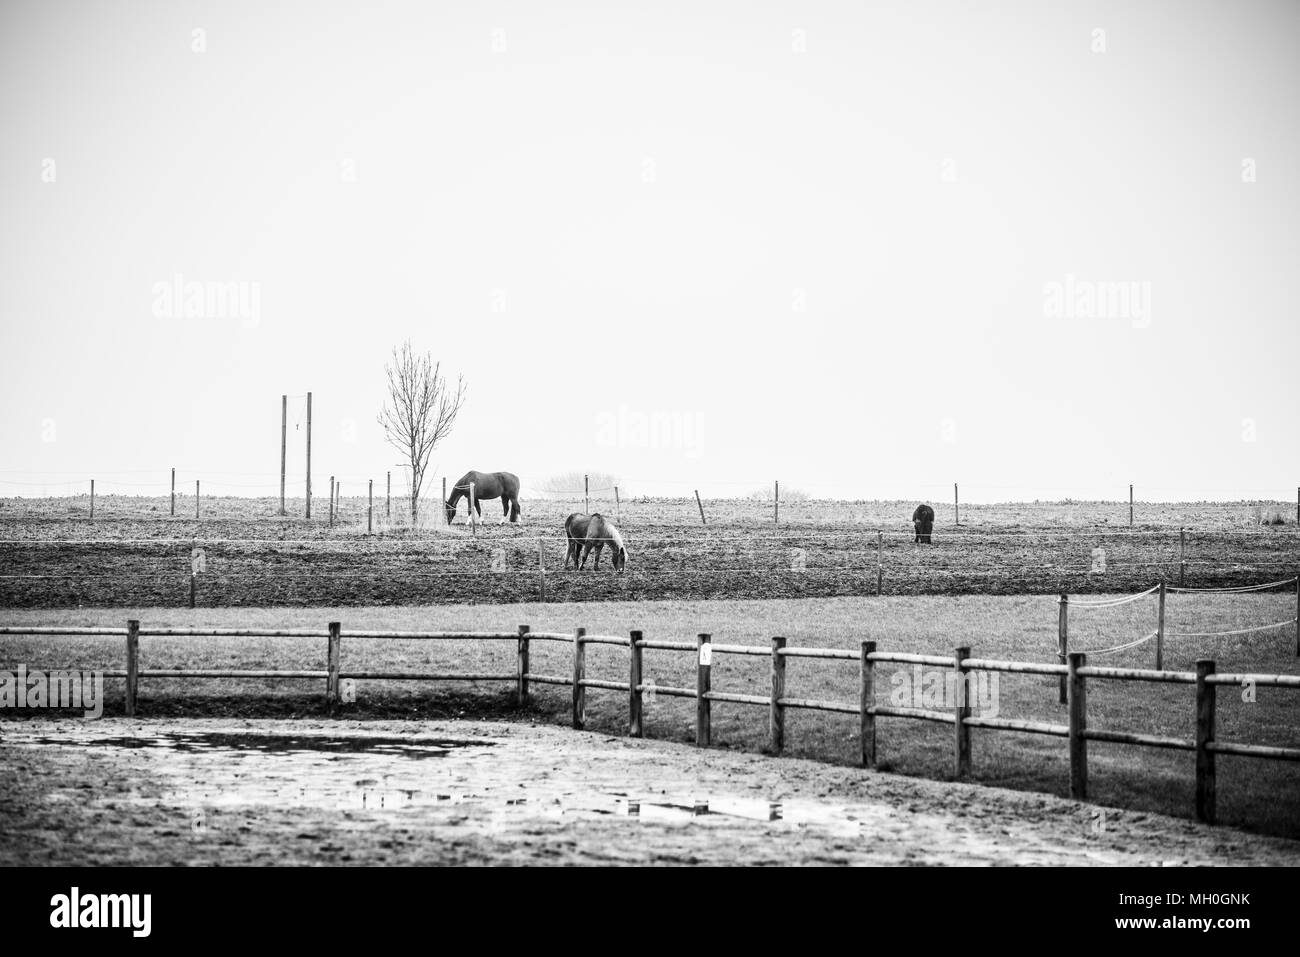 Black and white photo of horses on a rural field with a fence - Stock Image